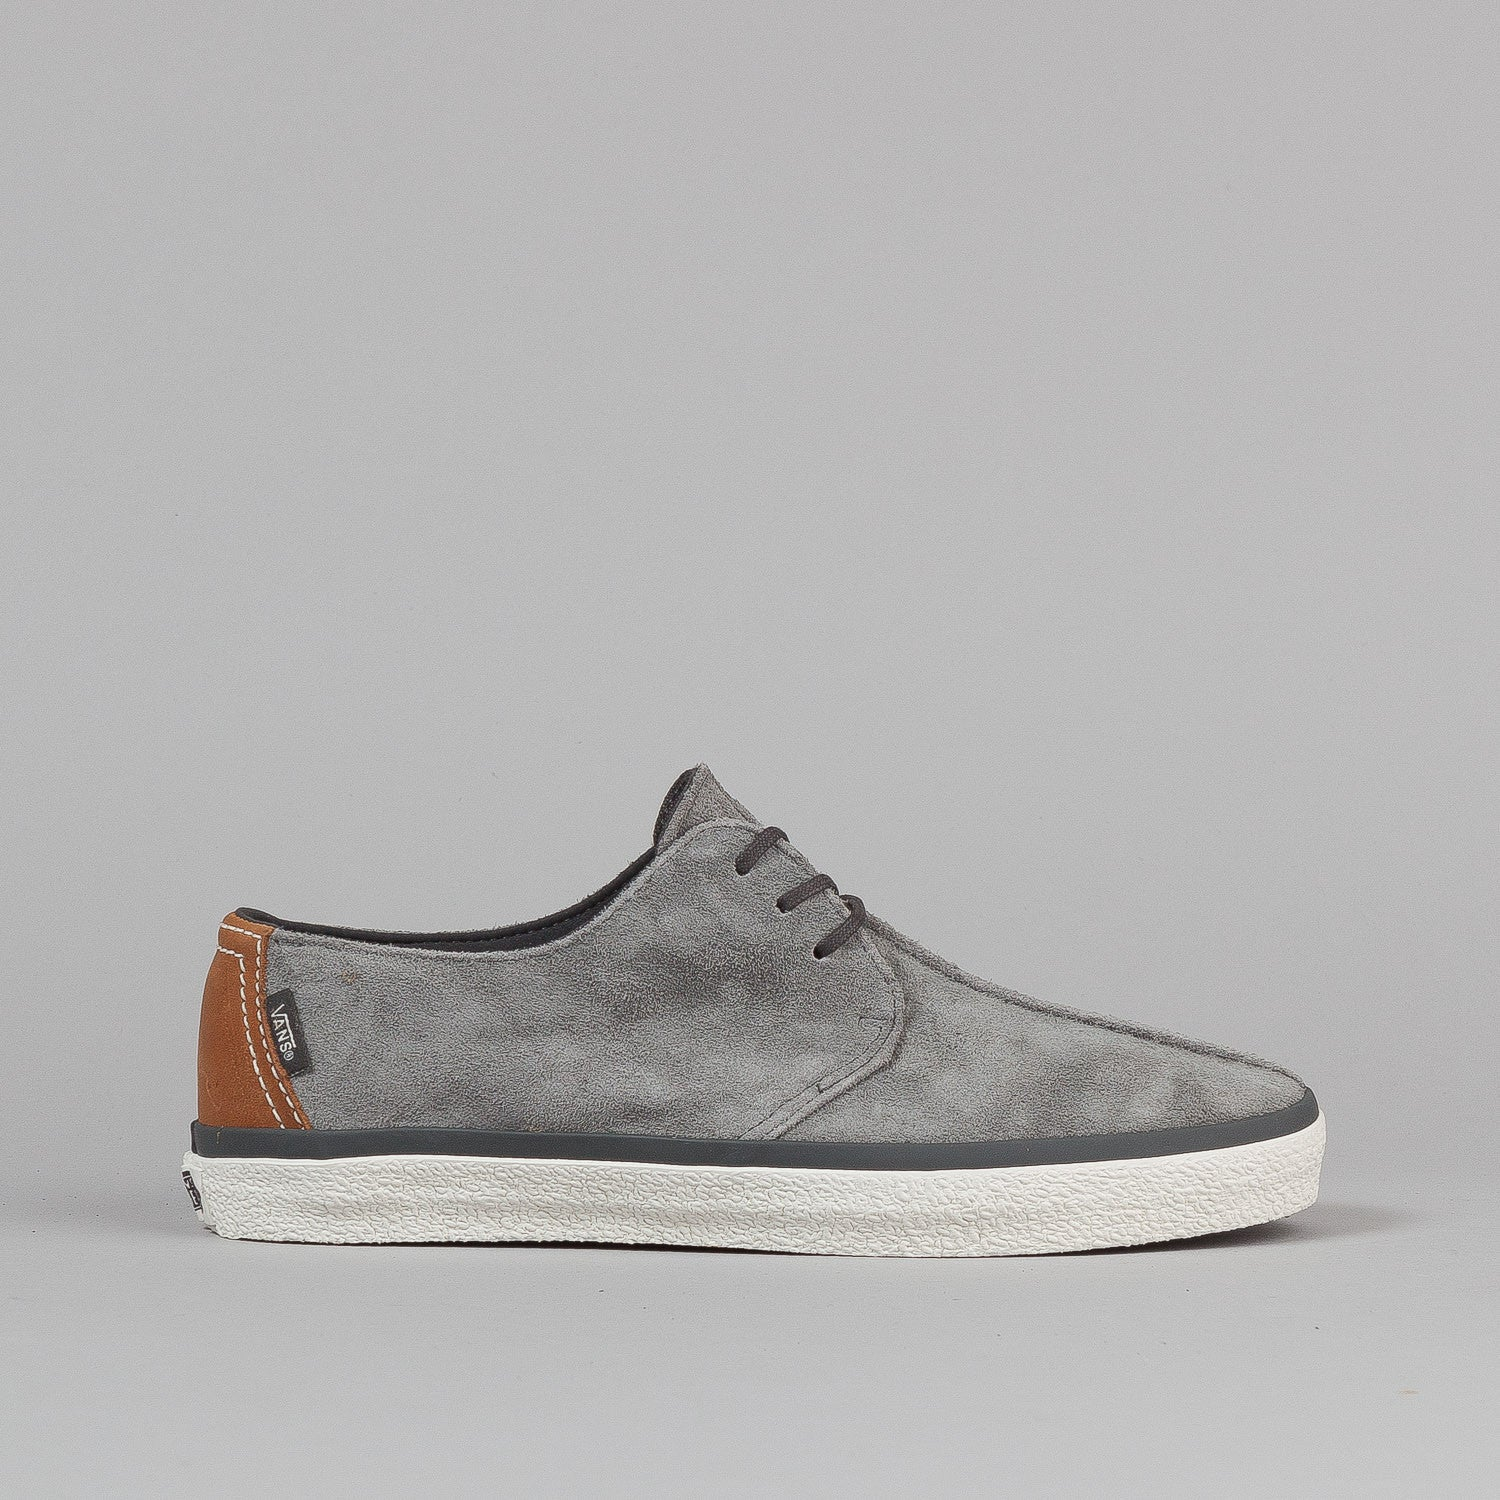 Vans Carrilo CA Shoes - Dark Shadow